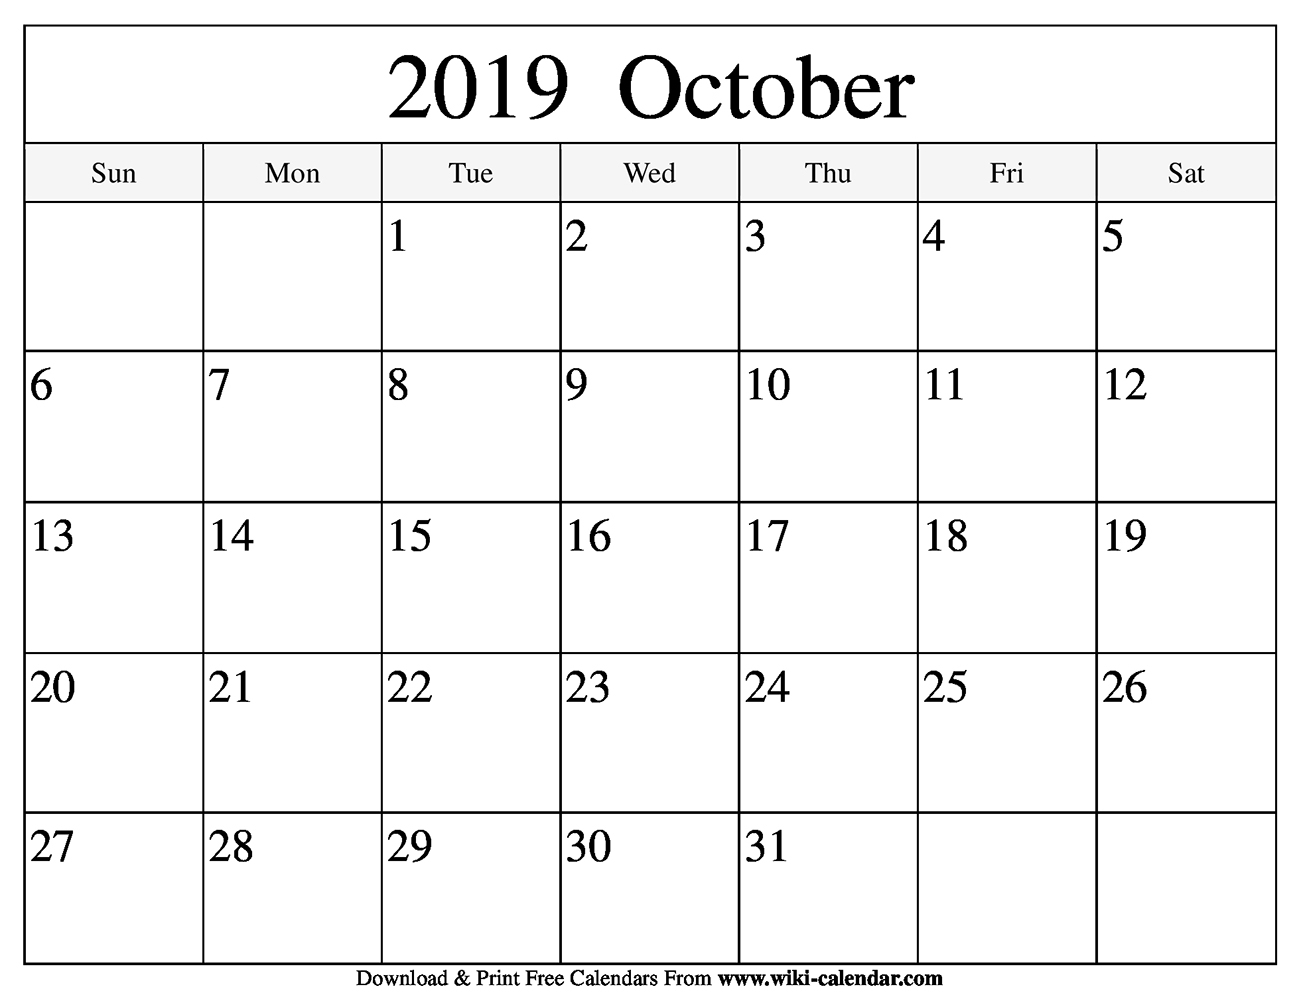 Calendars To Print For Free - Wpa.wpart.co